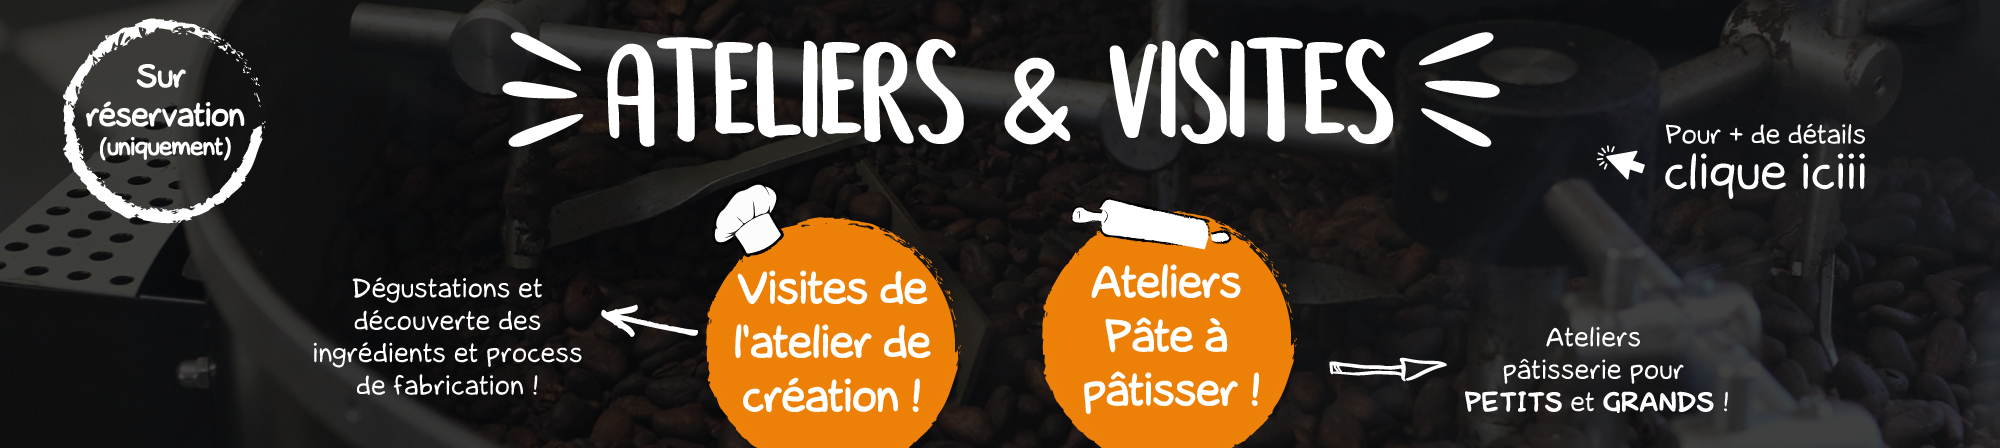 description ateliers et visites au magasin d'usine